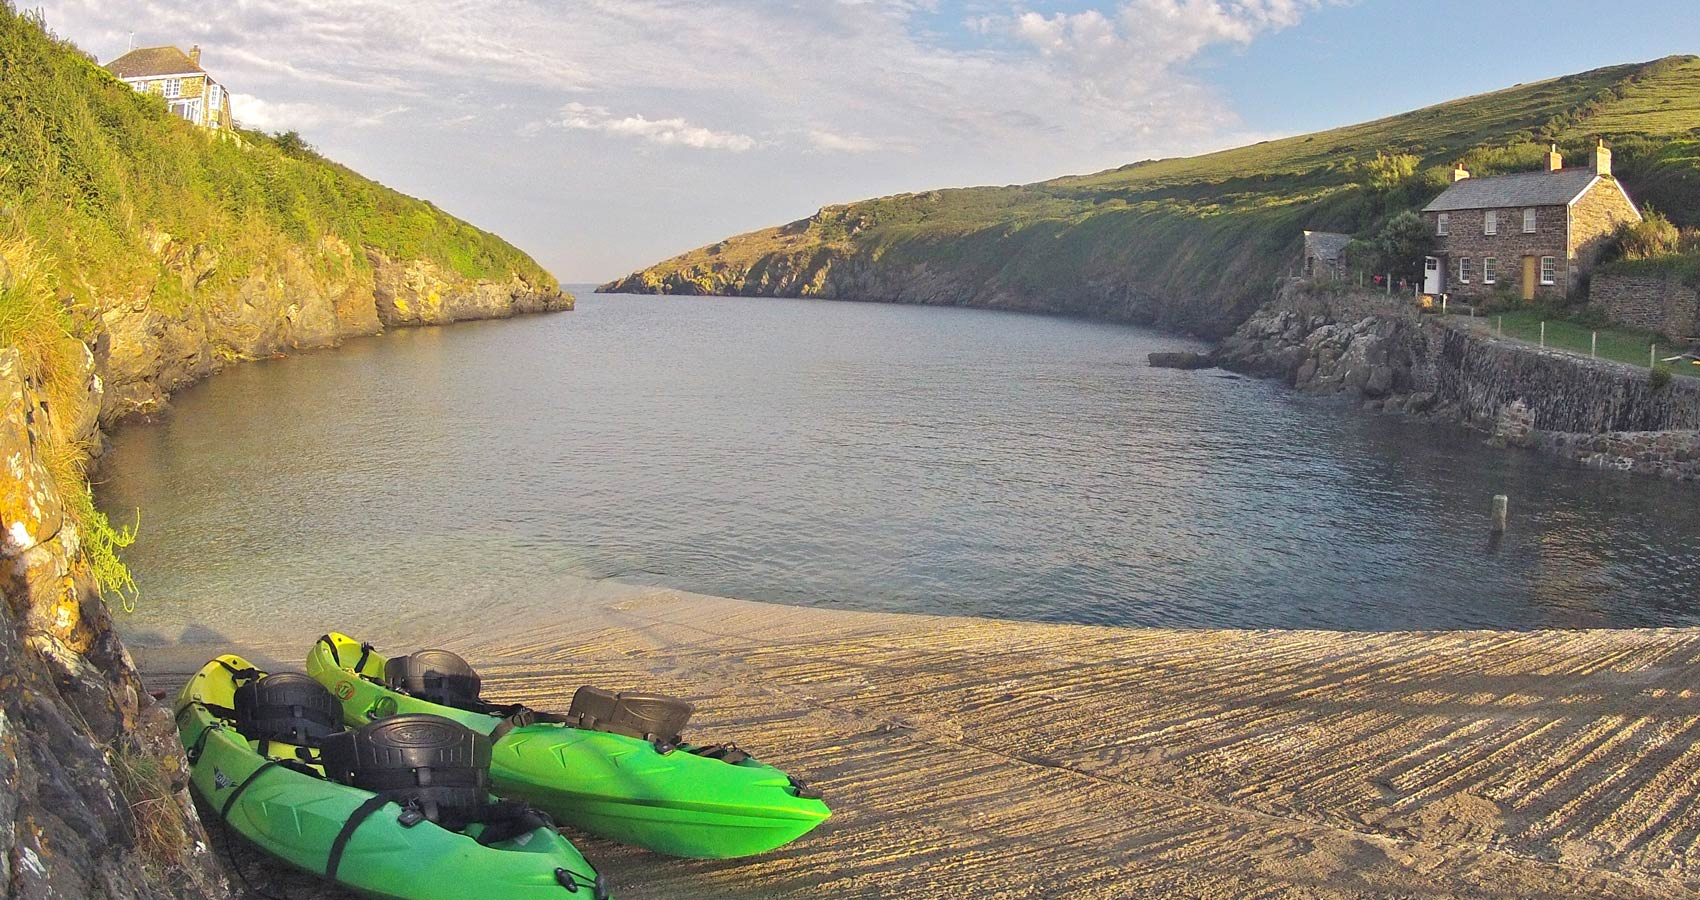 E.g. 'Kayak tours Cornwall'